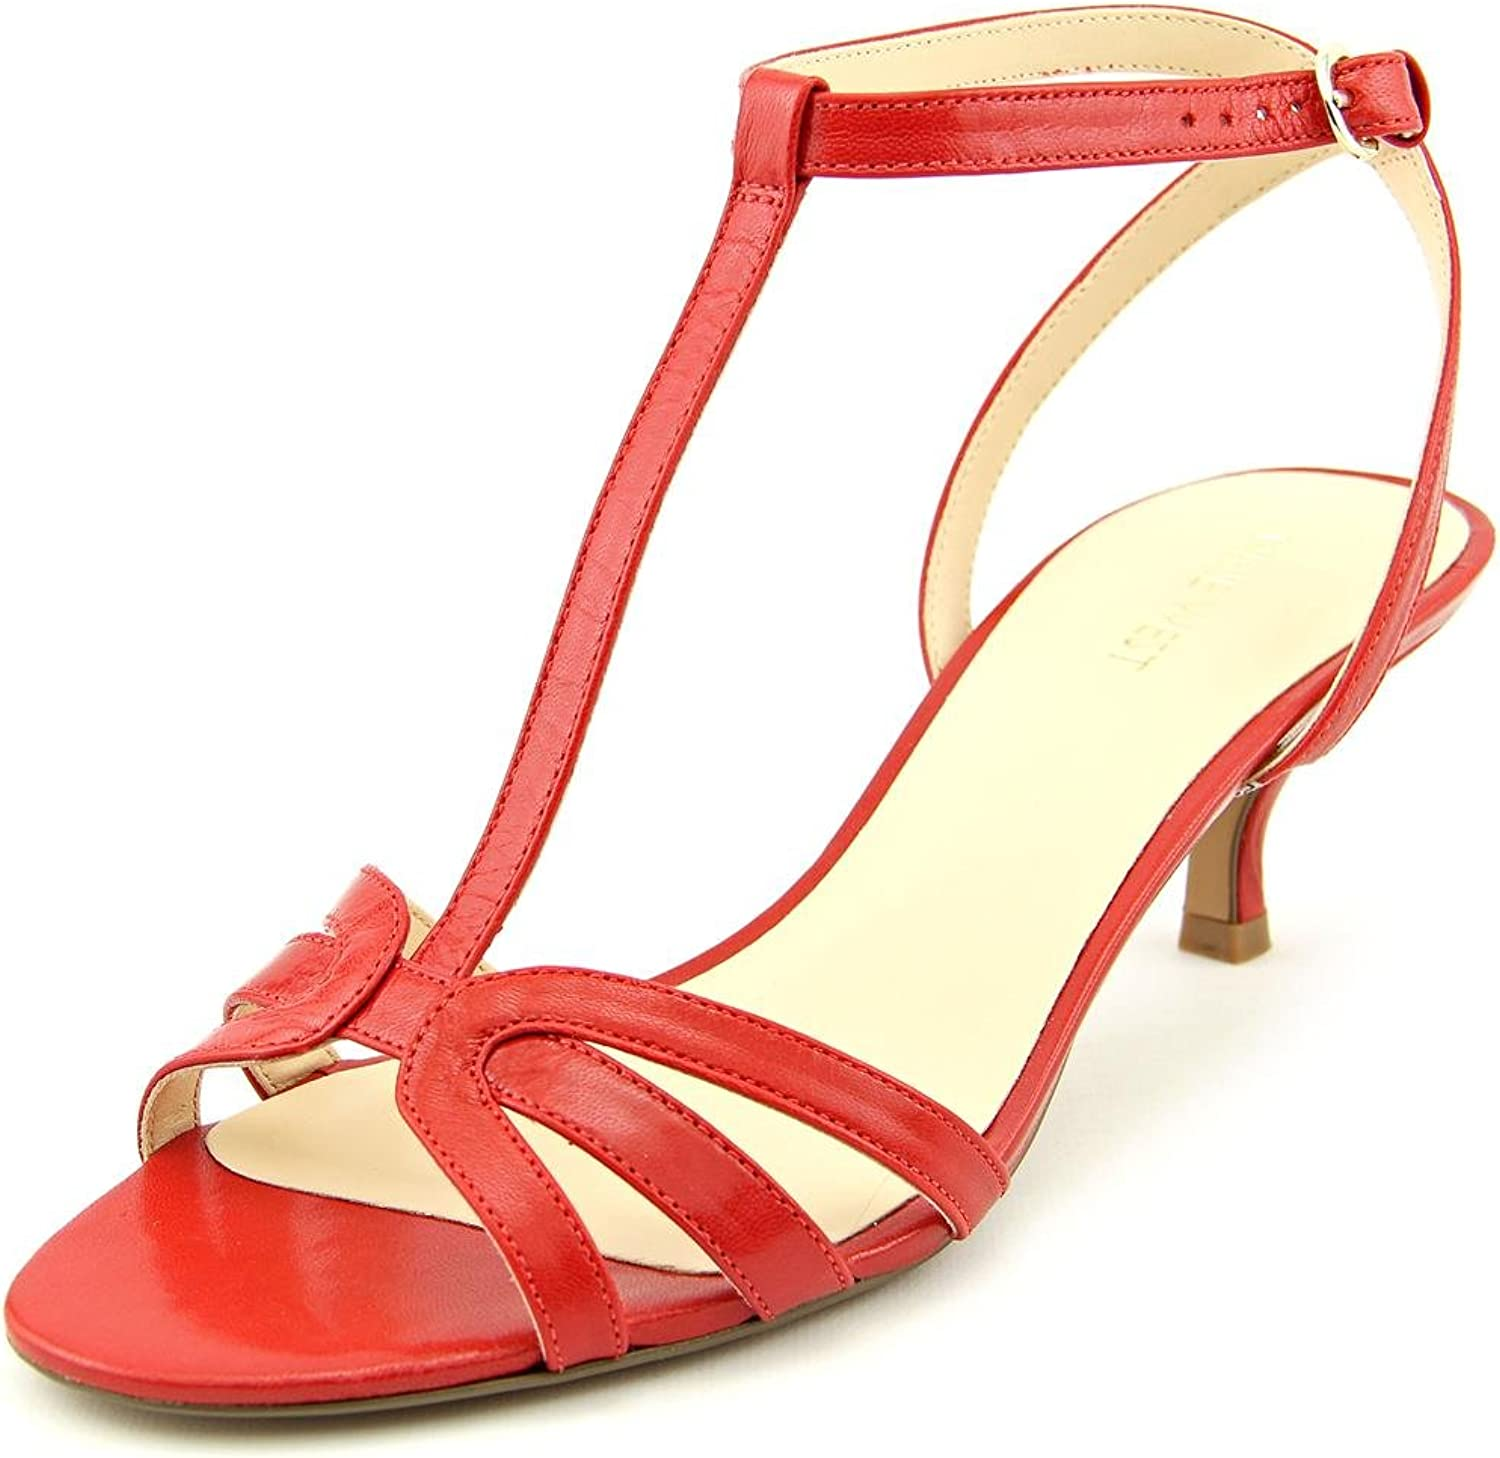 Nine West Odarlin Womens Size 5.5 Red Leather Dress Sandals shoes